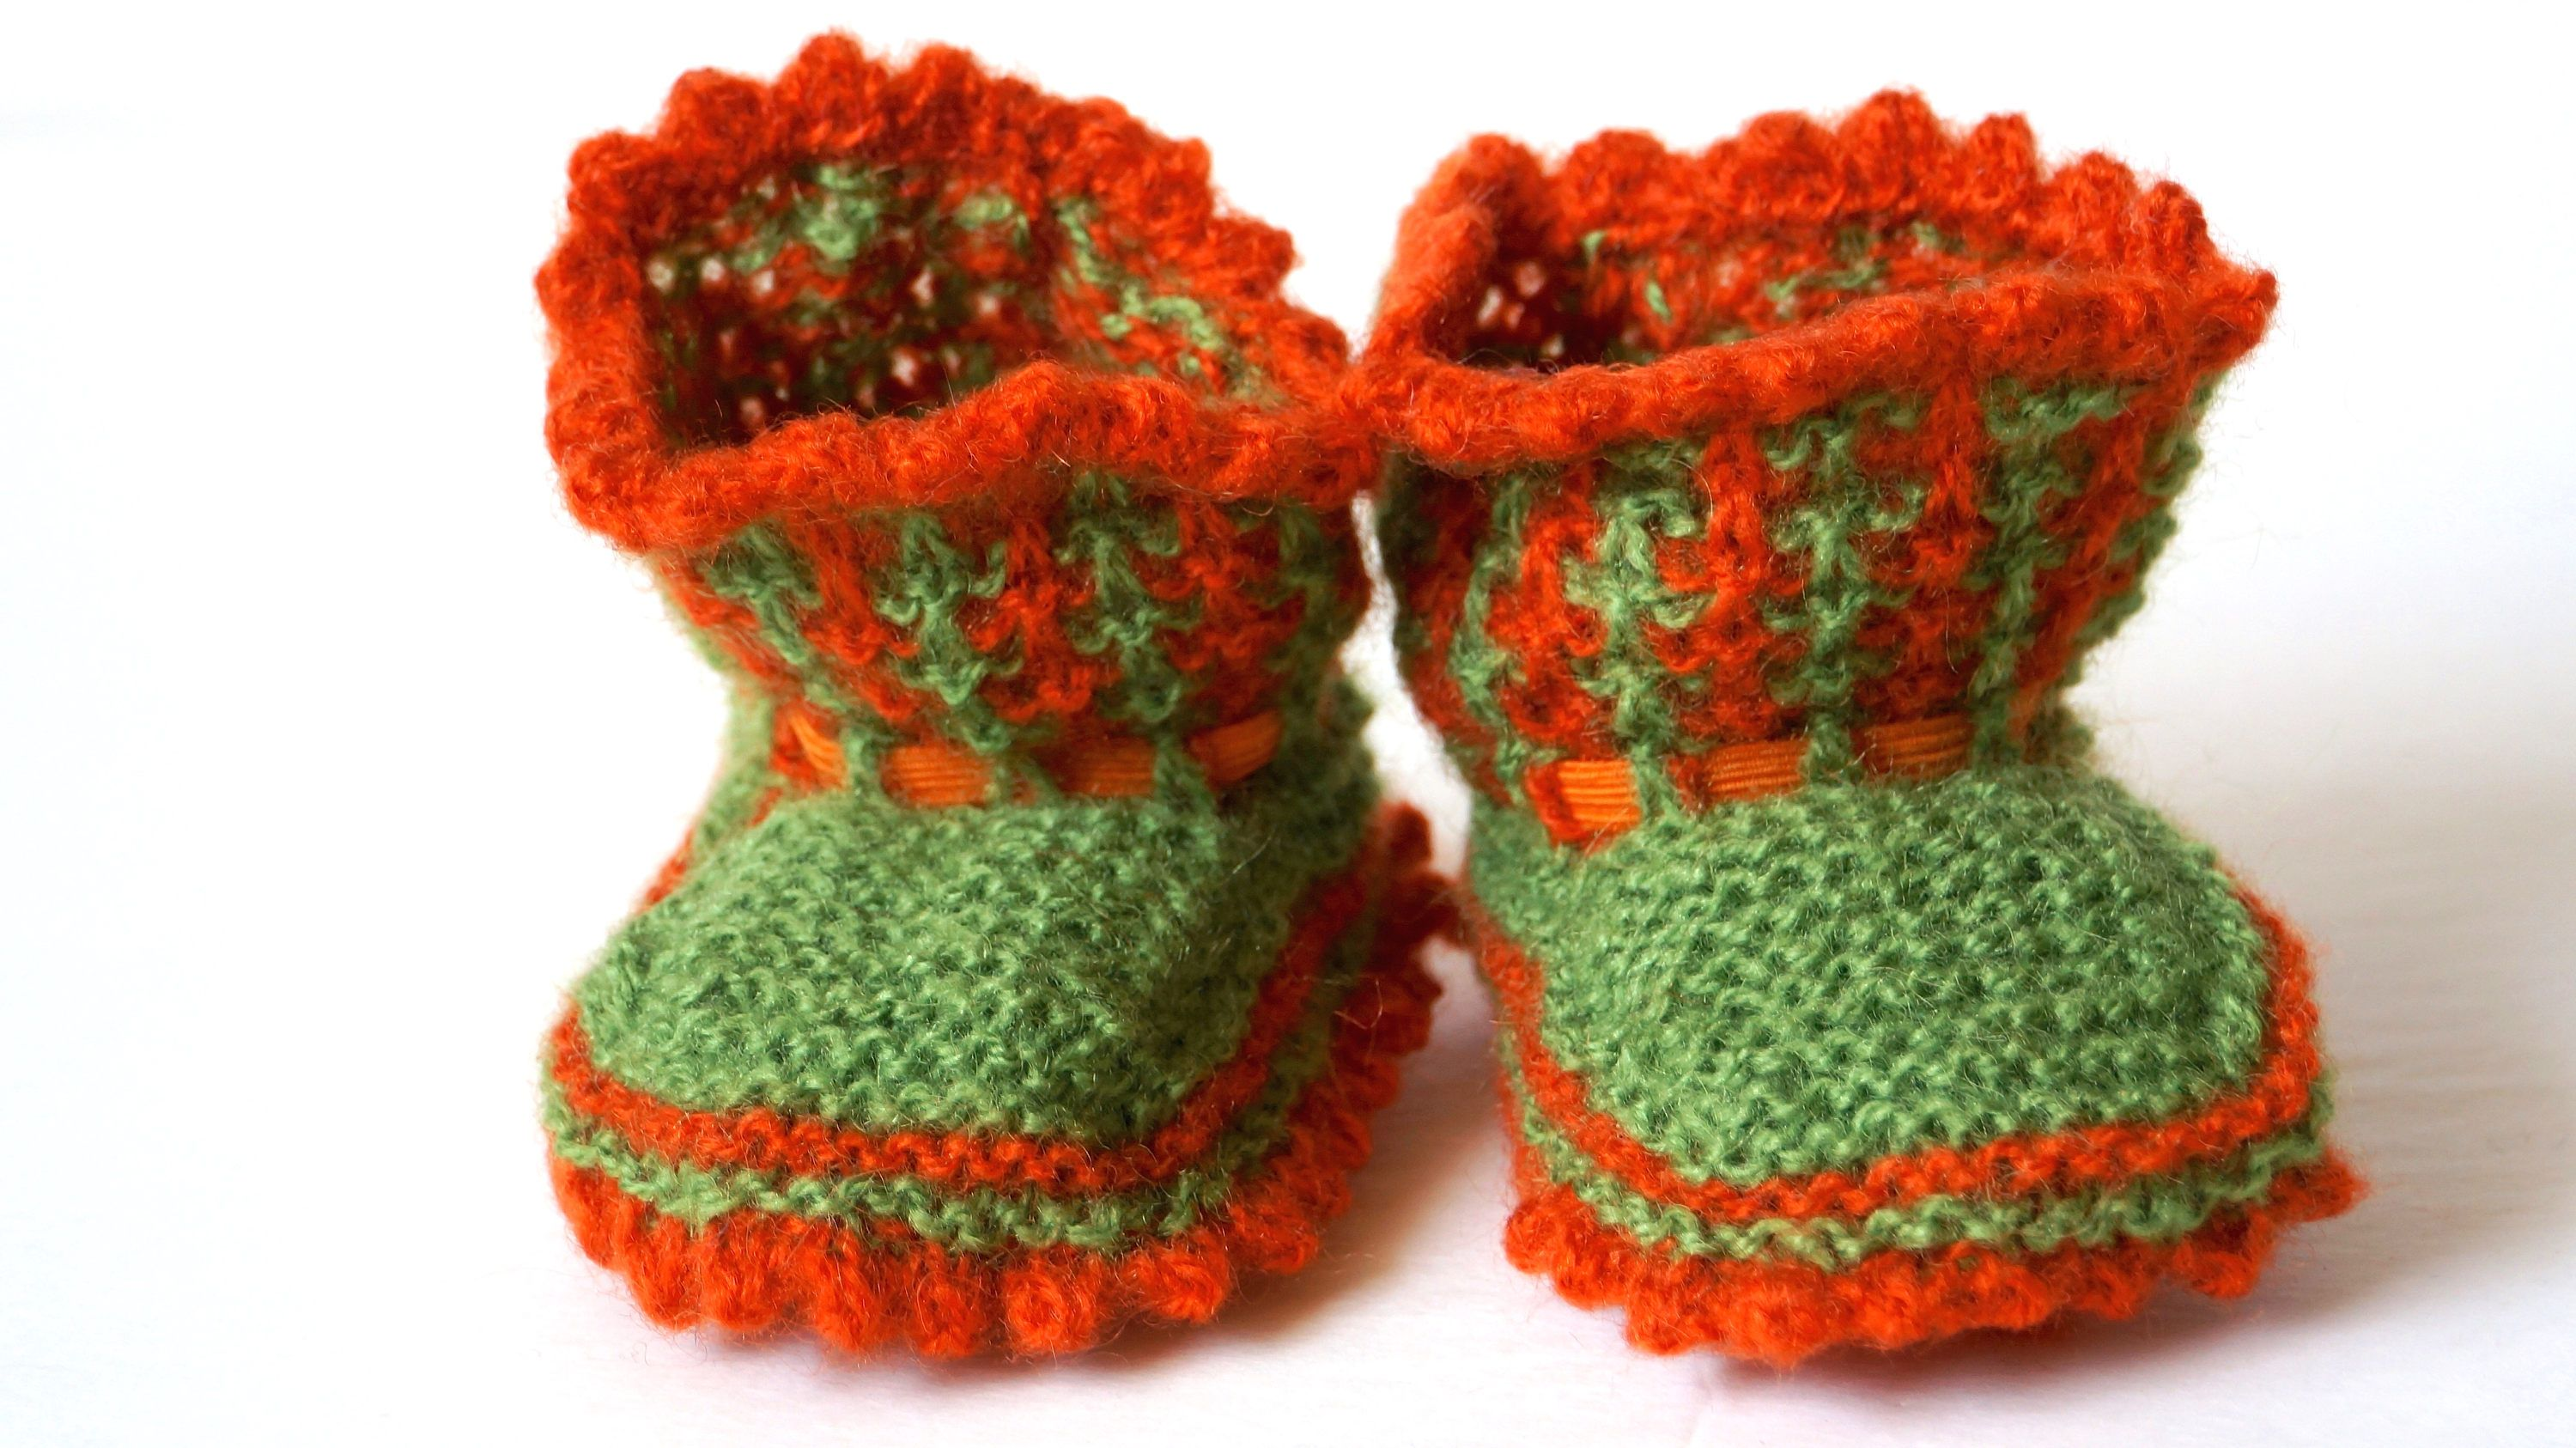 CUTE KNITTED UNISEX BOOTIES BY SOFT TOUCH